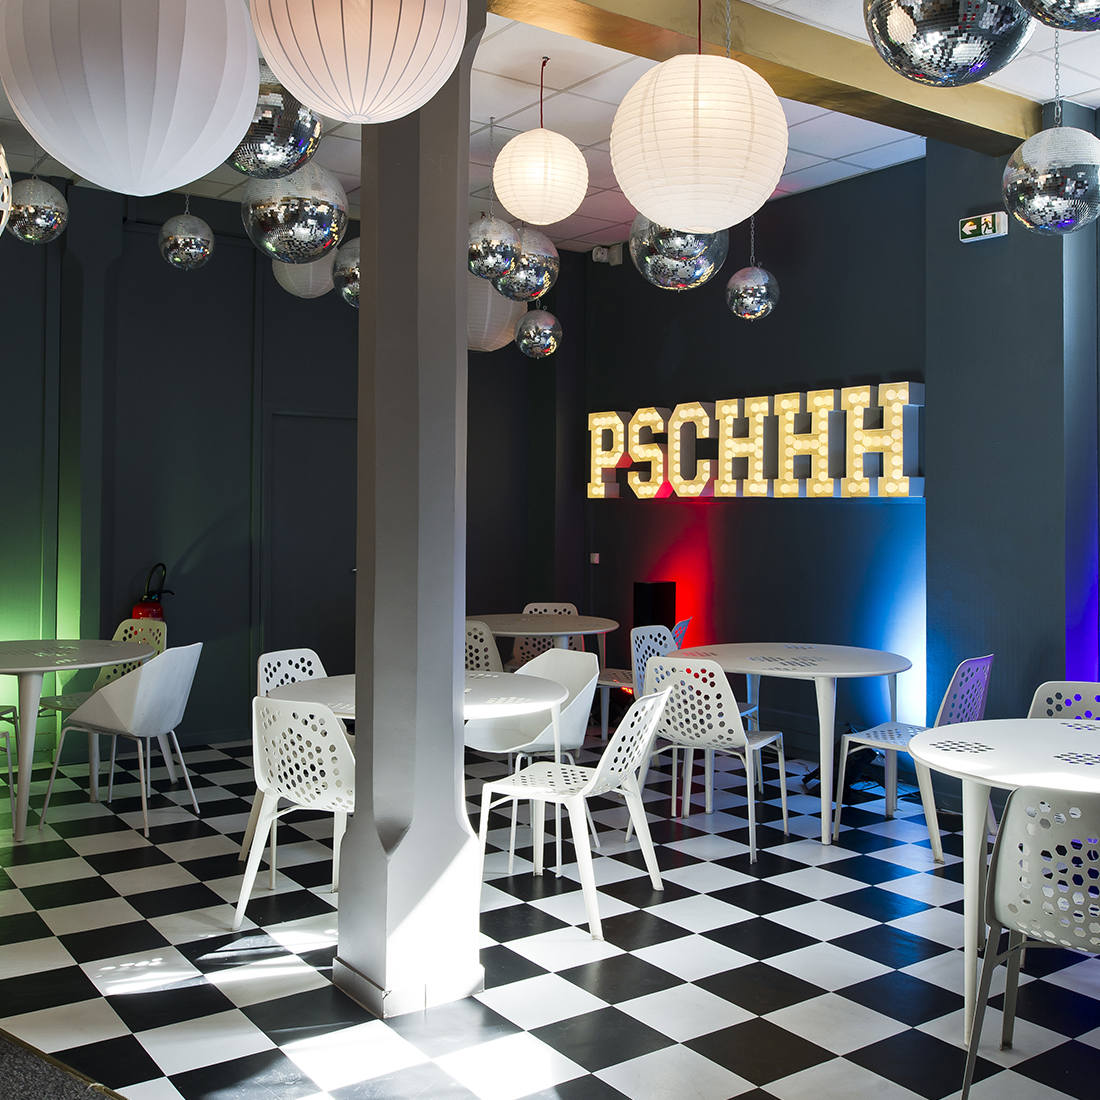 pschhh-paris-agence-publicite-communication-marketing-bureaux-offices-7